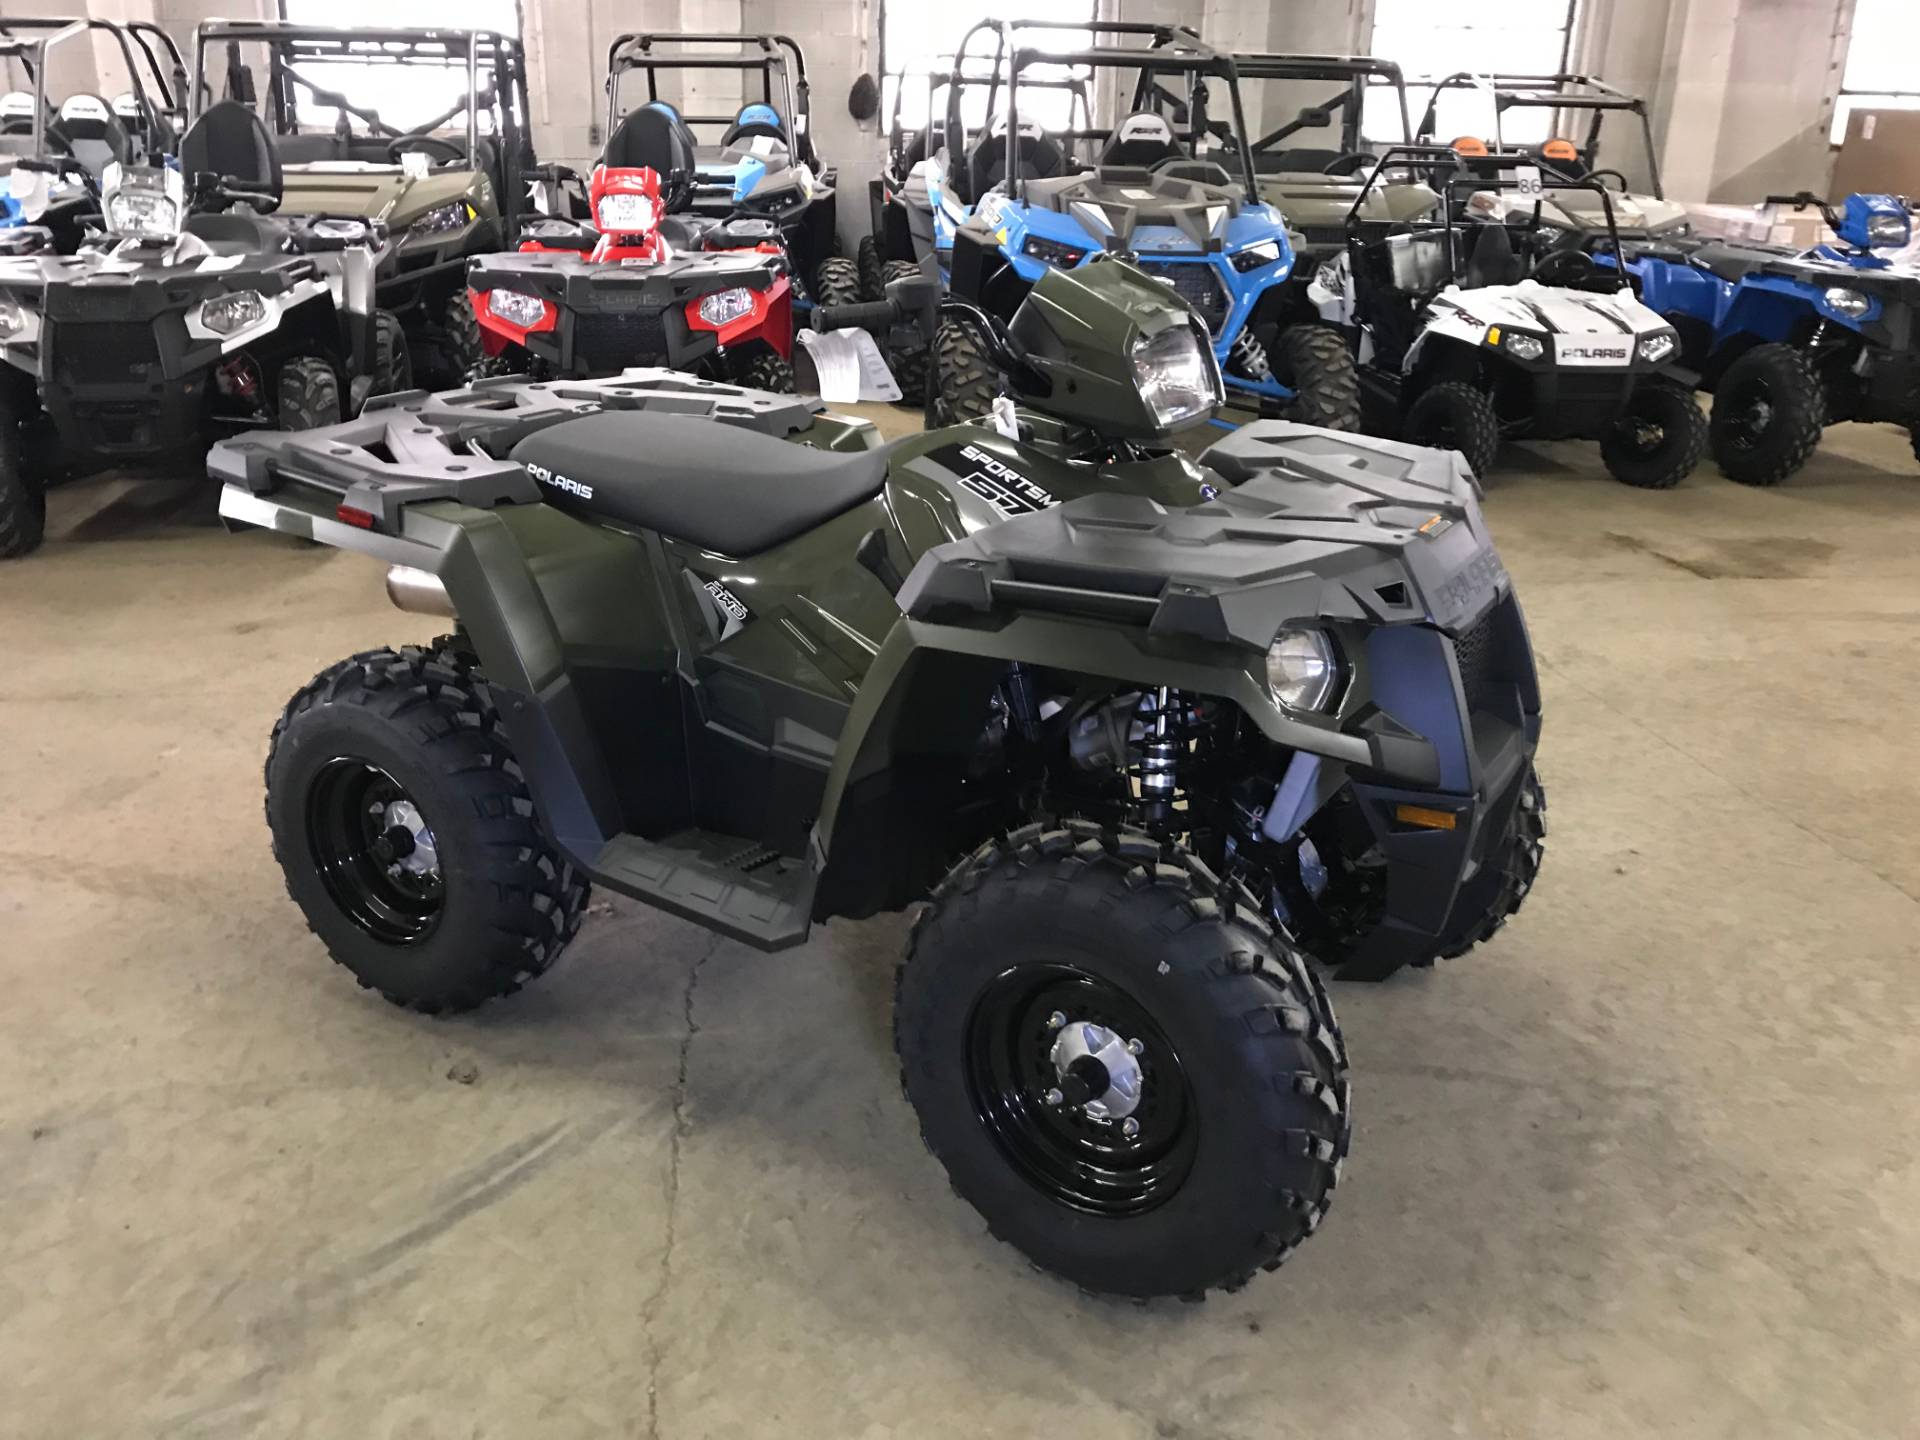 2019 Polaris Sportsman 570 in Chicora, Pennsylvania - Photo 1